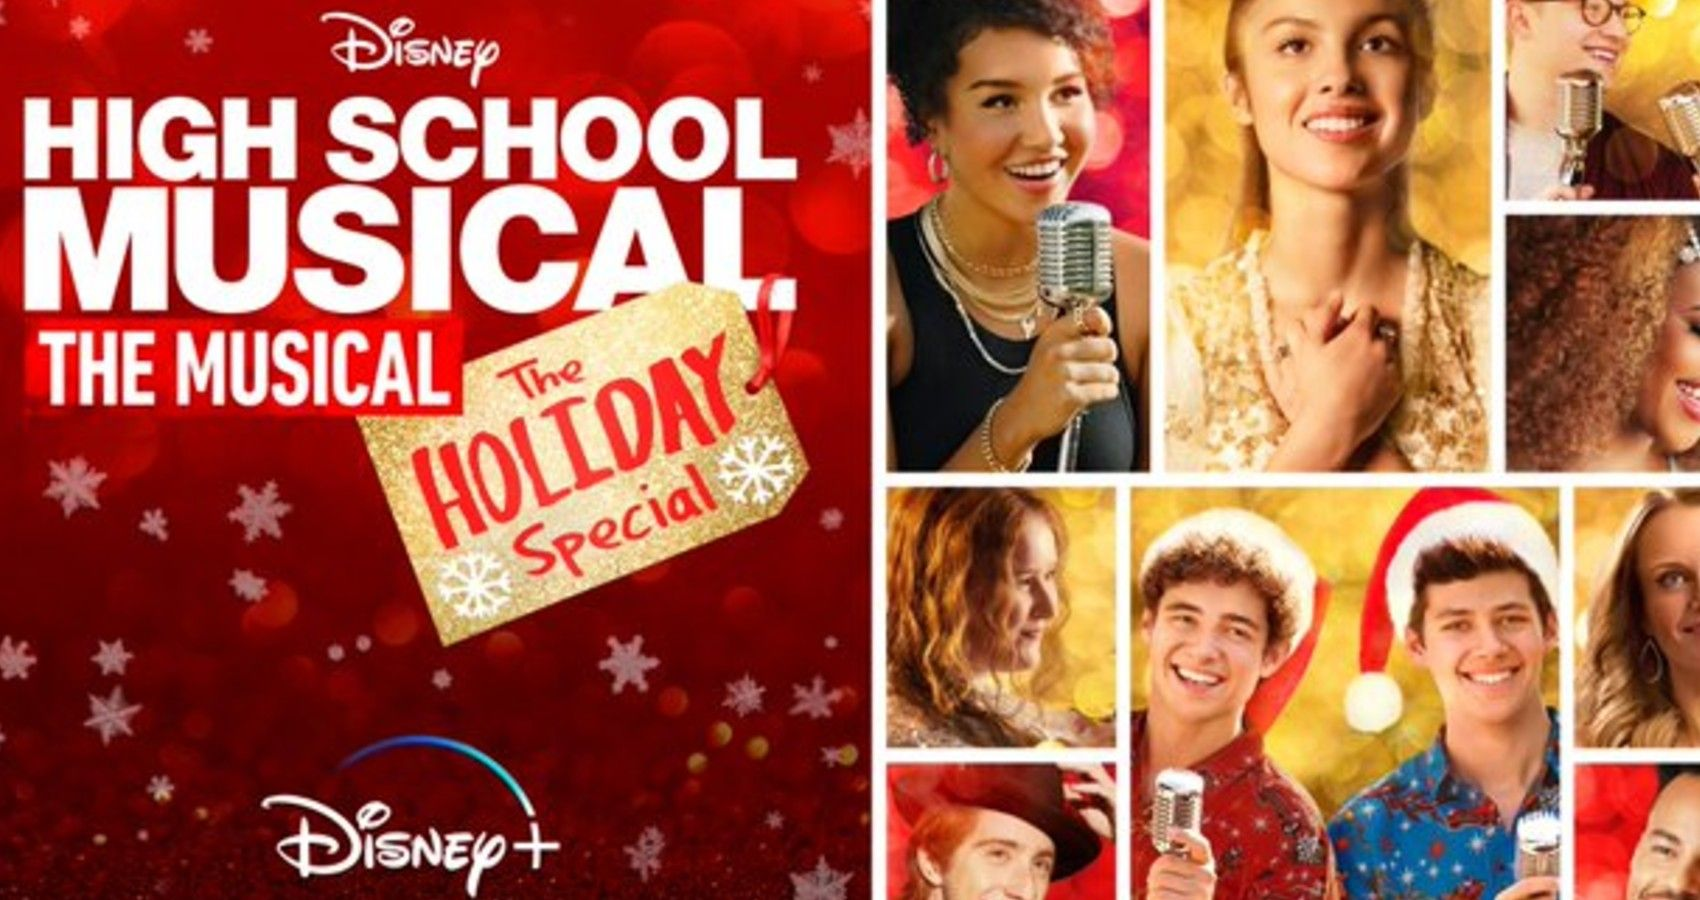 Disney+ Drops 'High School Musical: The Musical: The Holiday Special' Trailer